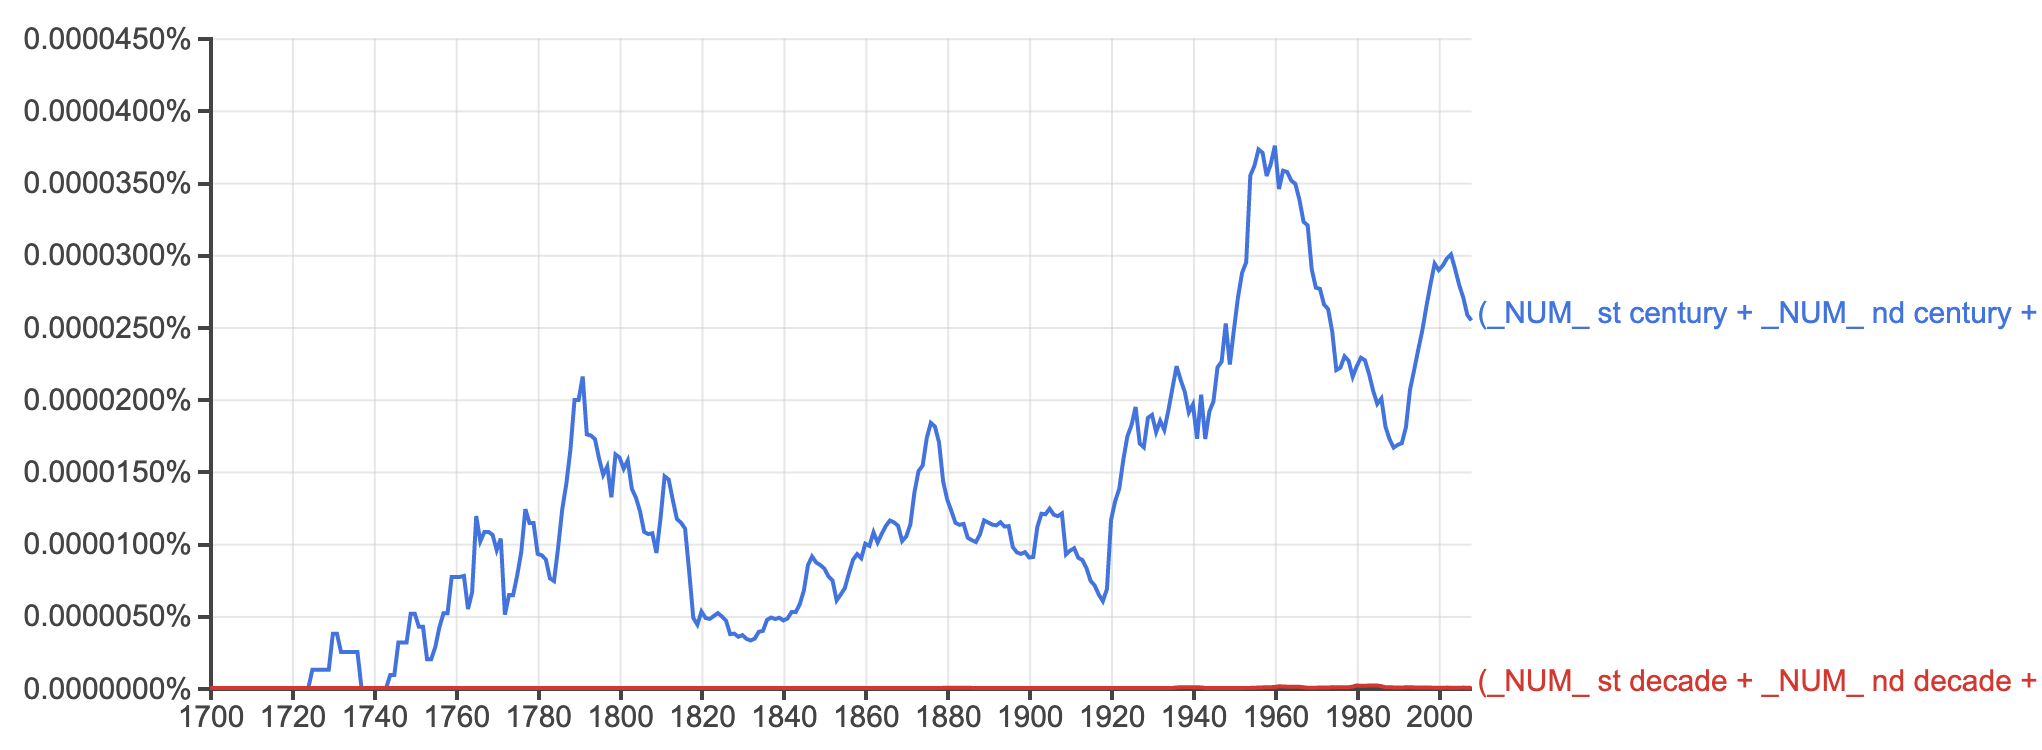 Google Ngram [results](https://books.google.com/ngrams/graph?content=_NUM_+st+century+%2B+_NUM_+nd+century+%2B+_NUM_+rd+century+%2B+_NUM_+th+century%2C_NUM_+st+decade+%2B+_NUM_+nd+decade+%2B+_NUM_+rd+decade+%2B+_NUM_+th+decade&case_insensitive=on&year_start=1700&year_end=2020&corpus=15&smoothing=3&share=&direct_url=t1%3B%2C%28_NUM_%20st%20century%20%2B%20%20_NUM_%20nd%20century%20%2B%20%20_NUM_%20rd%20century%20%2B%20%20_NUM_%20th%20century%29%3B%2Cc0%3B.t1%3B%2C%28_NUM_%20st%20decade%20%2B%20%20_NUM_%20nd%20decade%20%2B%20%20_NUM_%20rd%20decade%20%2B%20%20_NUM_%20th%20decade%29%3B%2Cc0) showing frequency of ordinal reference to centuries vs. to decades.